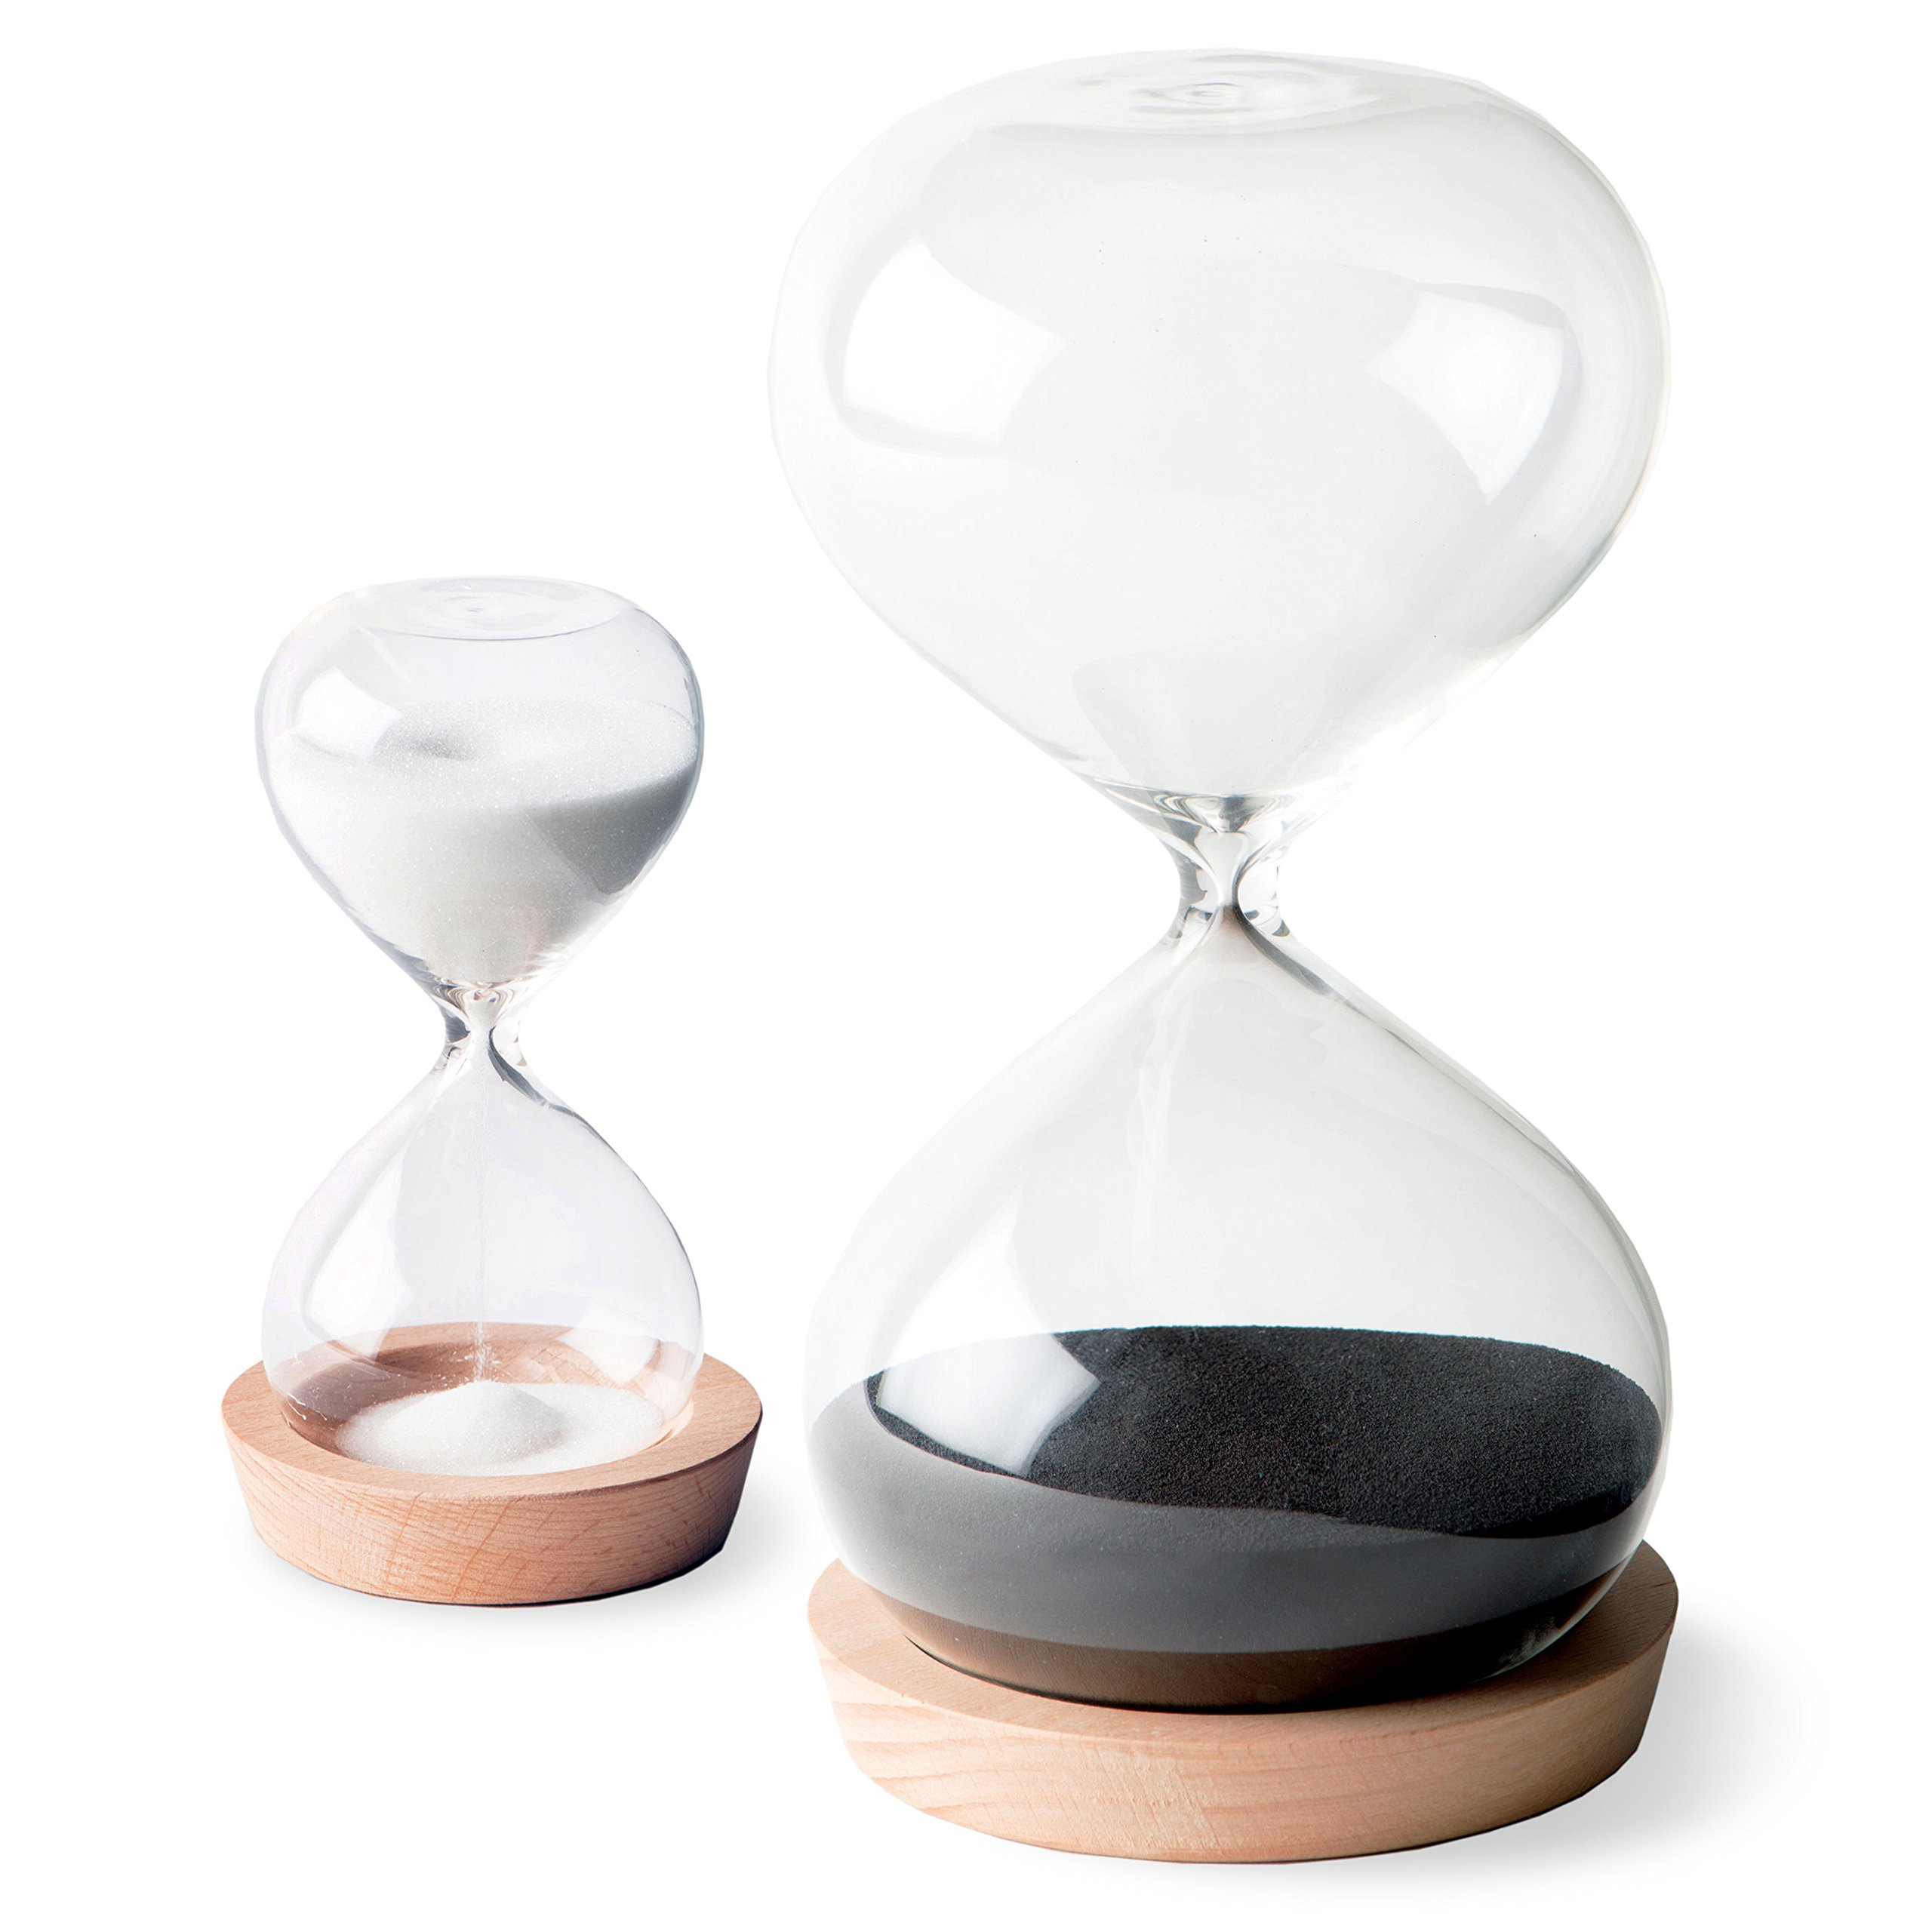 organice hourglass sand timer 30 minute 5 minute timer set